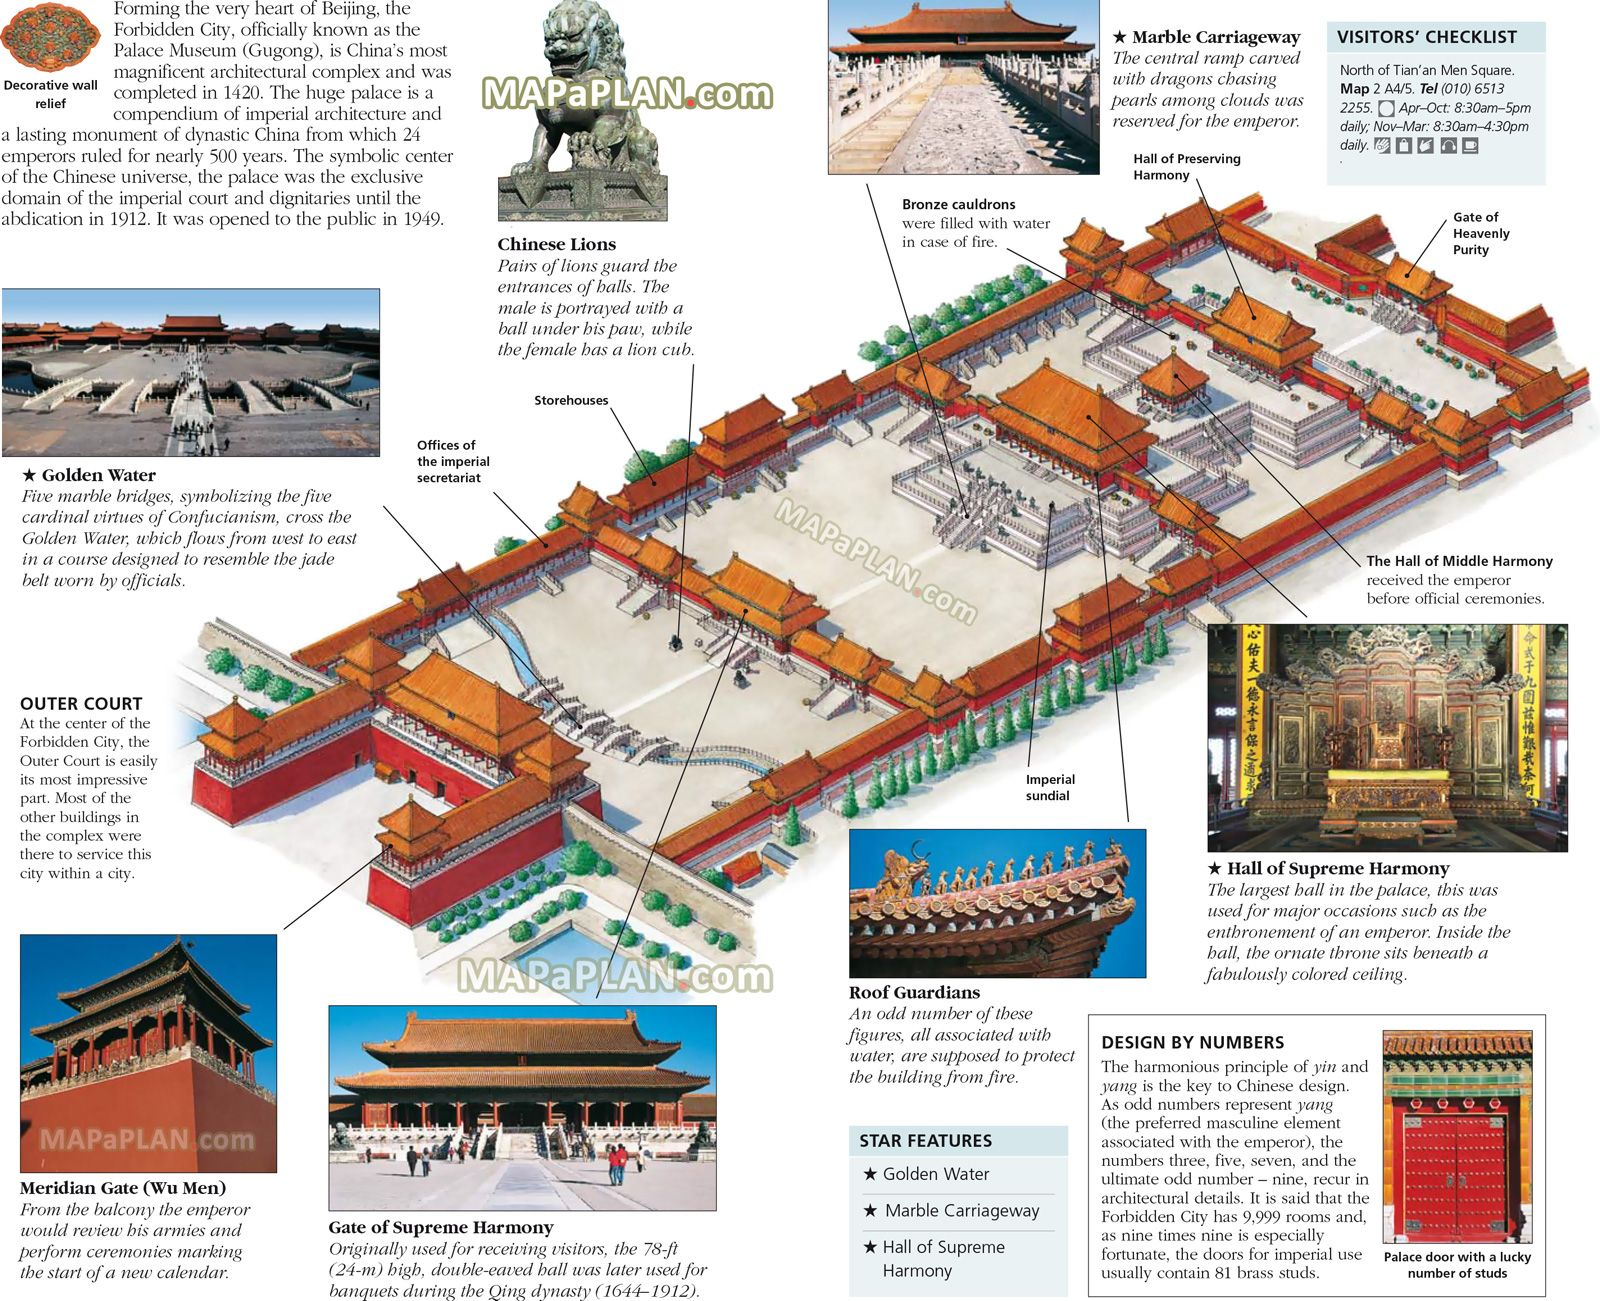 Forbidden City - Lessons - Tes Teach  |Imperial Palace Forbidden City Beijing China